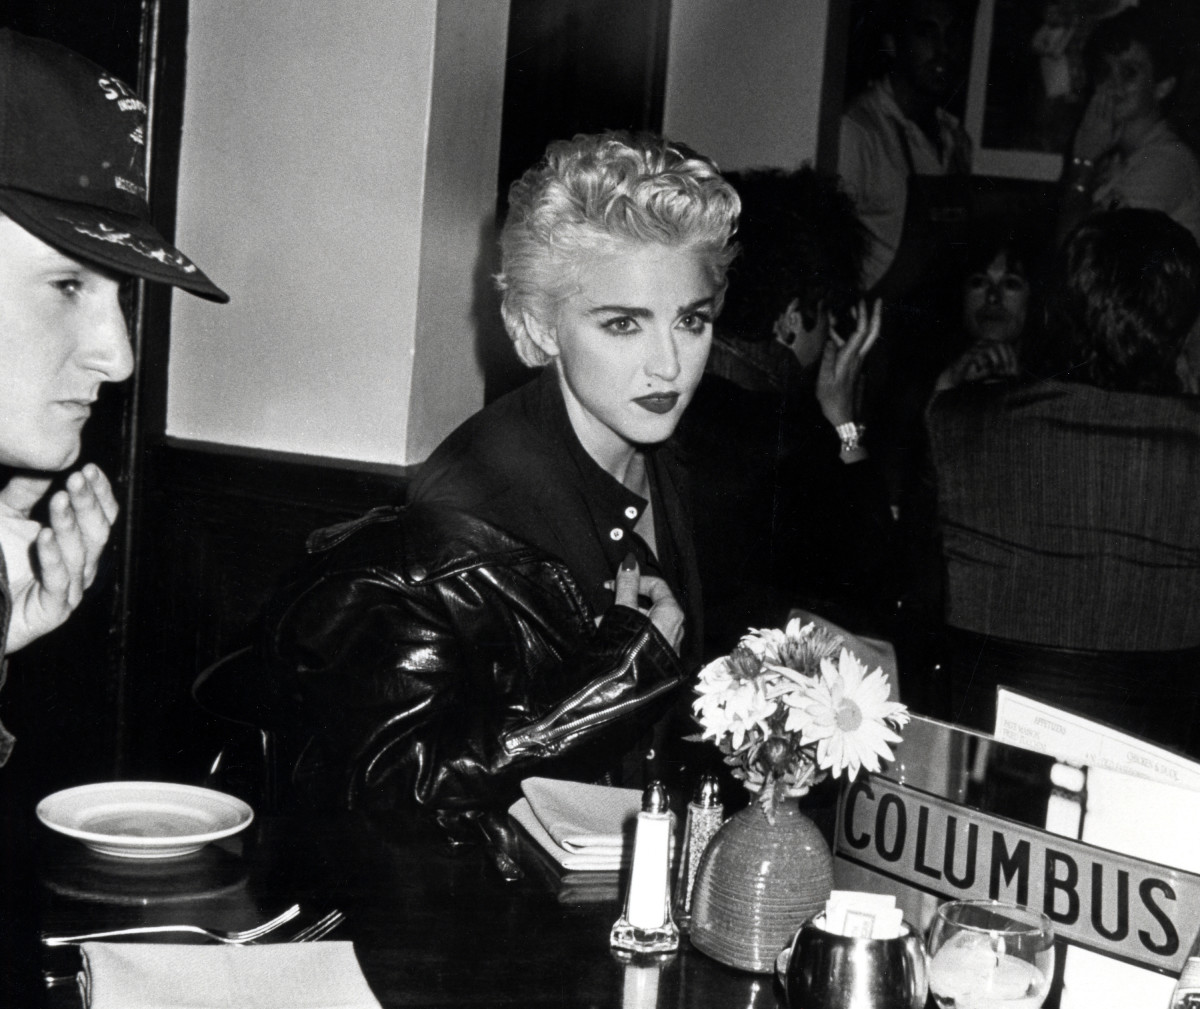 Madonna 80's: Sean Penn and Madonna dining at Elaine's Restaurant in New York City. (Photo undated).